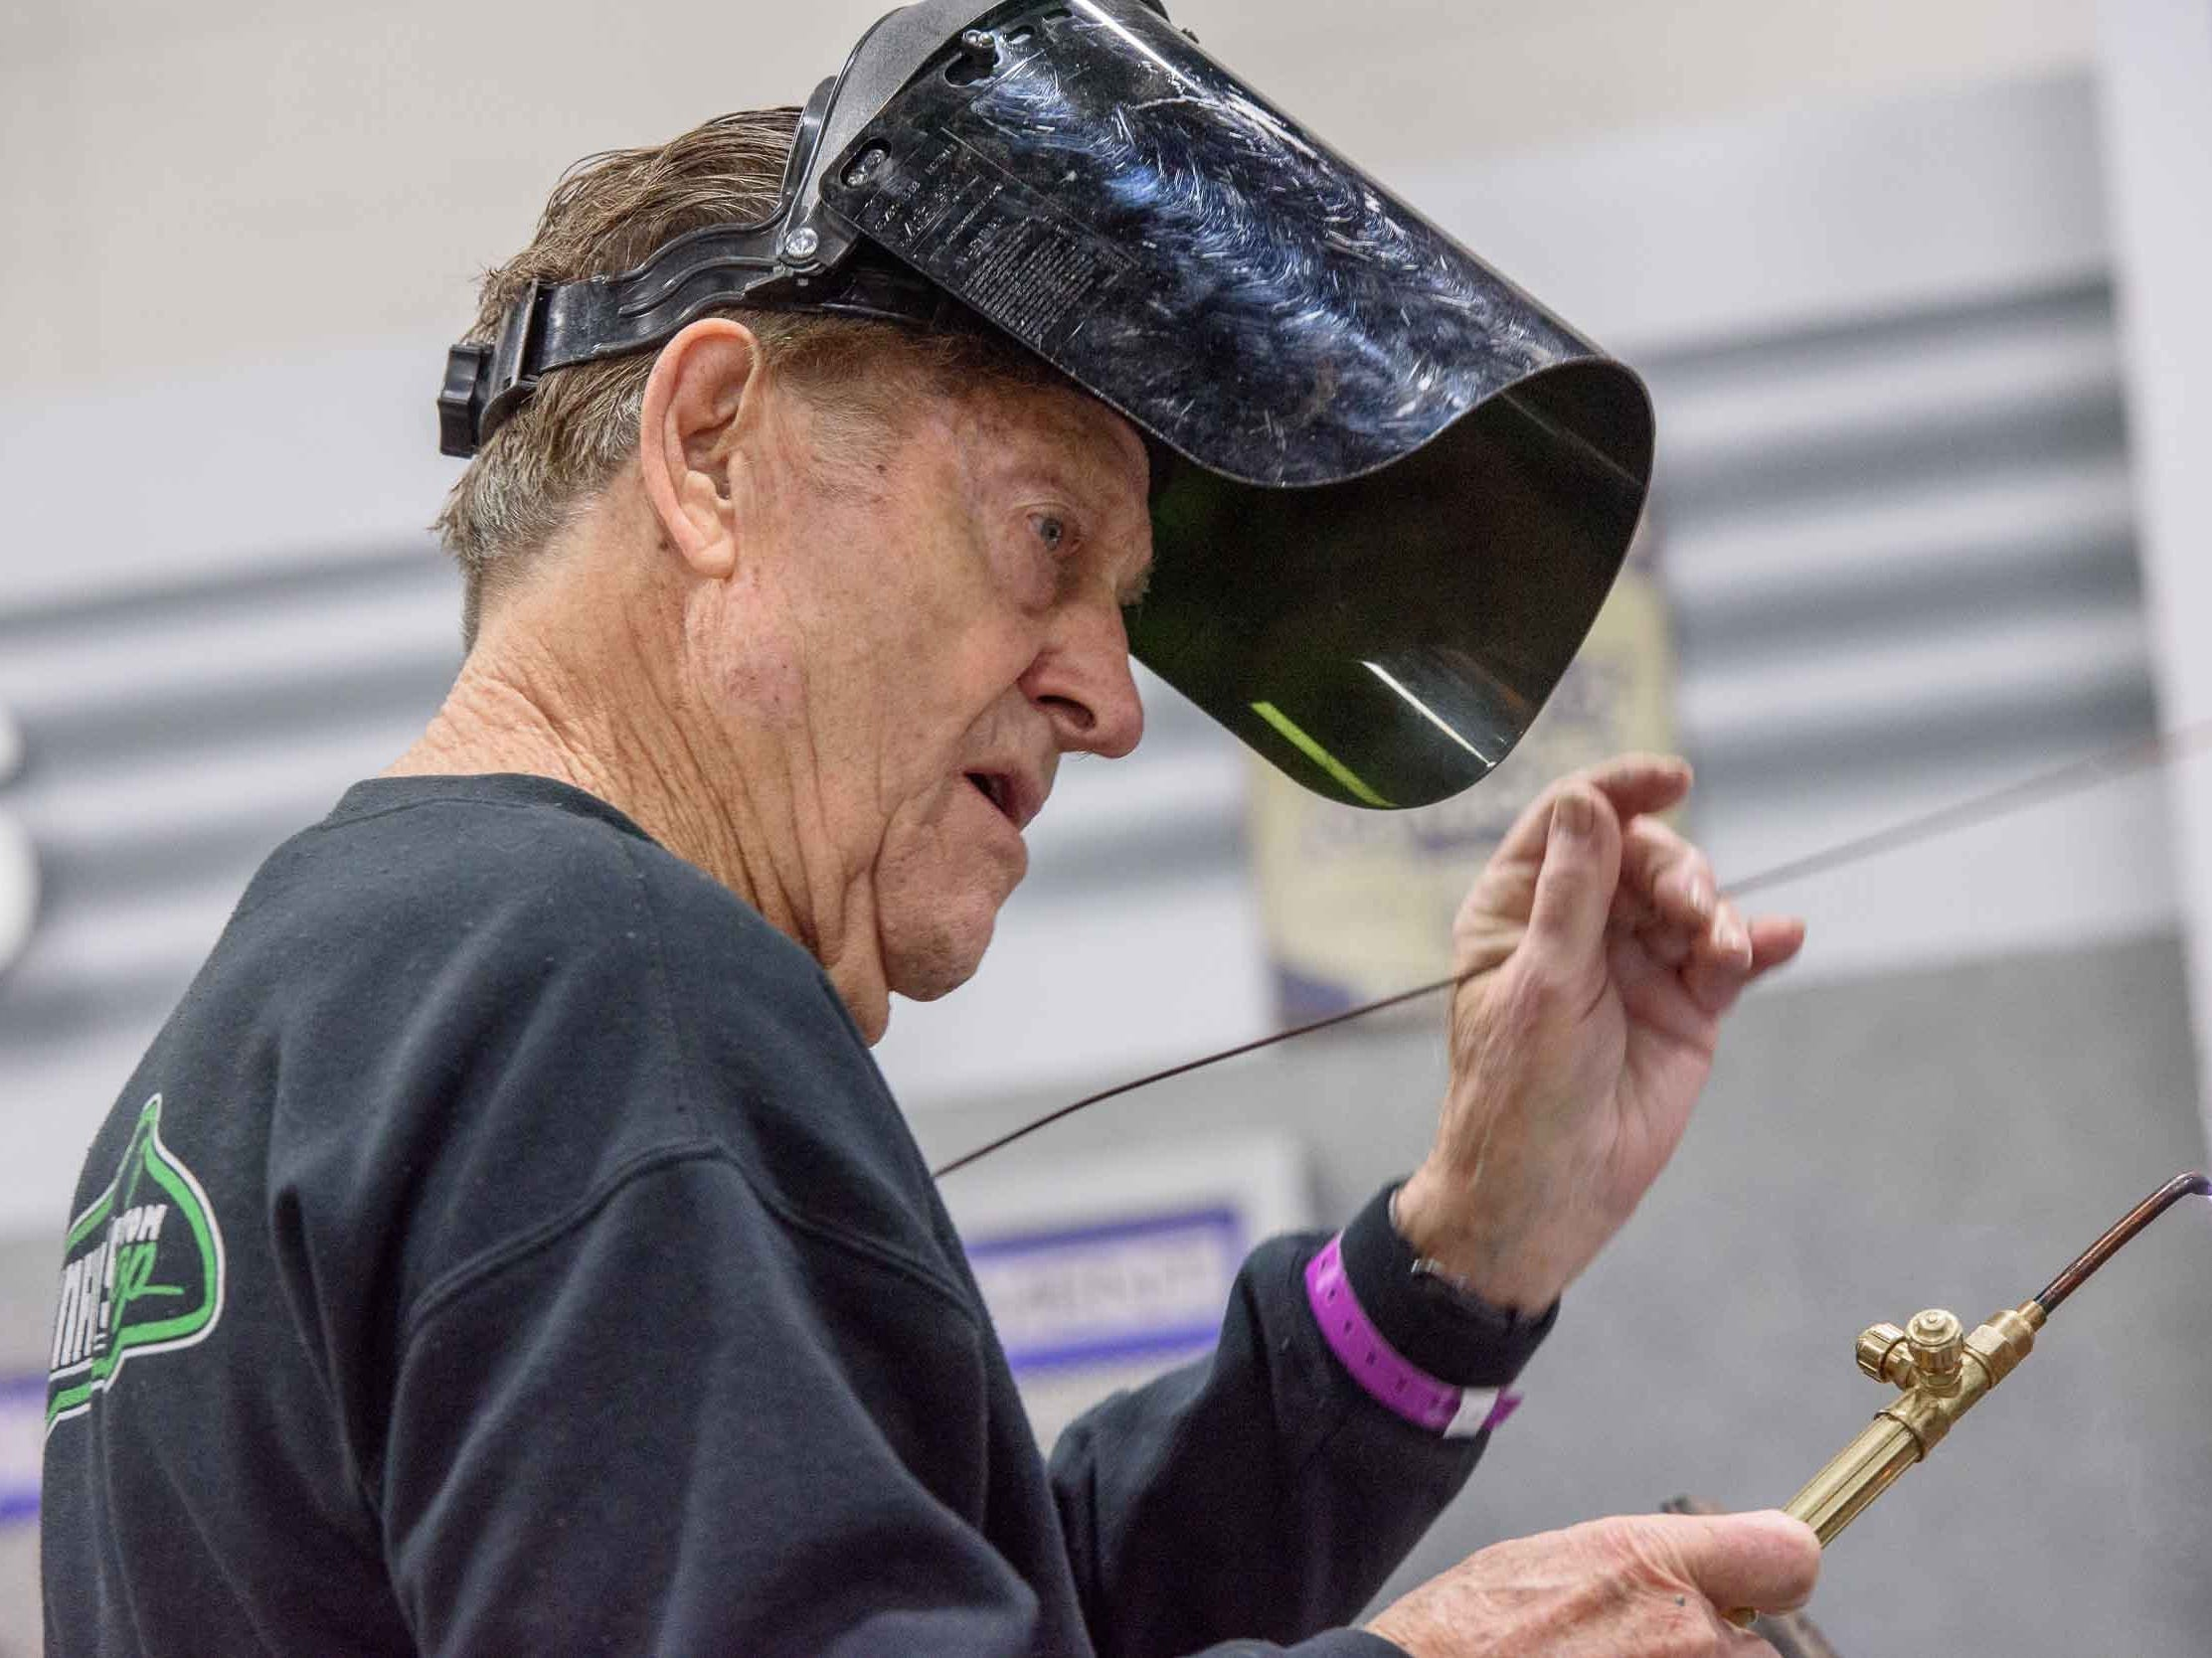 Legendary automotive customizer Gene Winfield demonstrates metal fabricating techniques for fans during Autorama 2019 at Cobo Center, March 2, 2019.